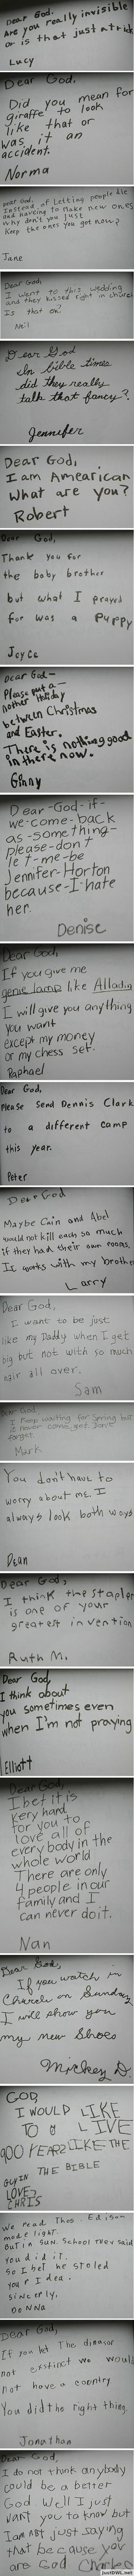 23 Funny Children's Letters To God